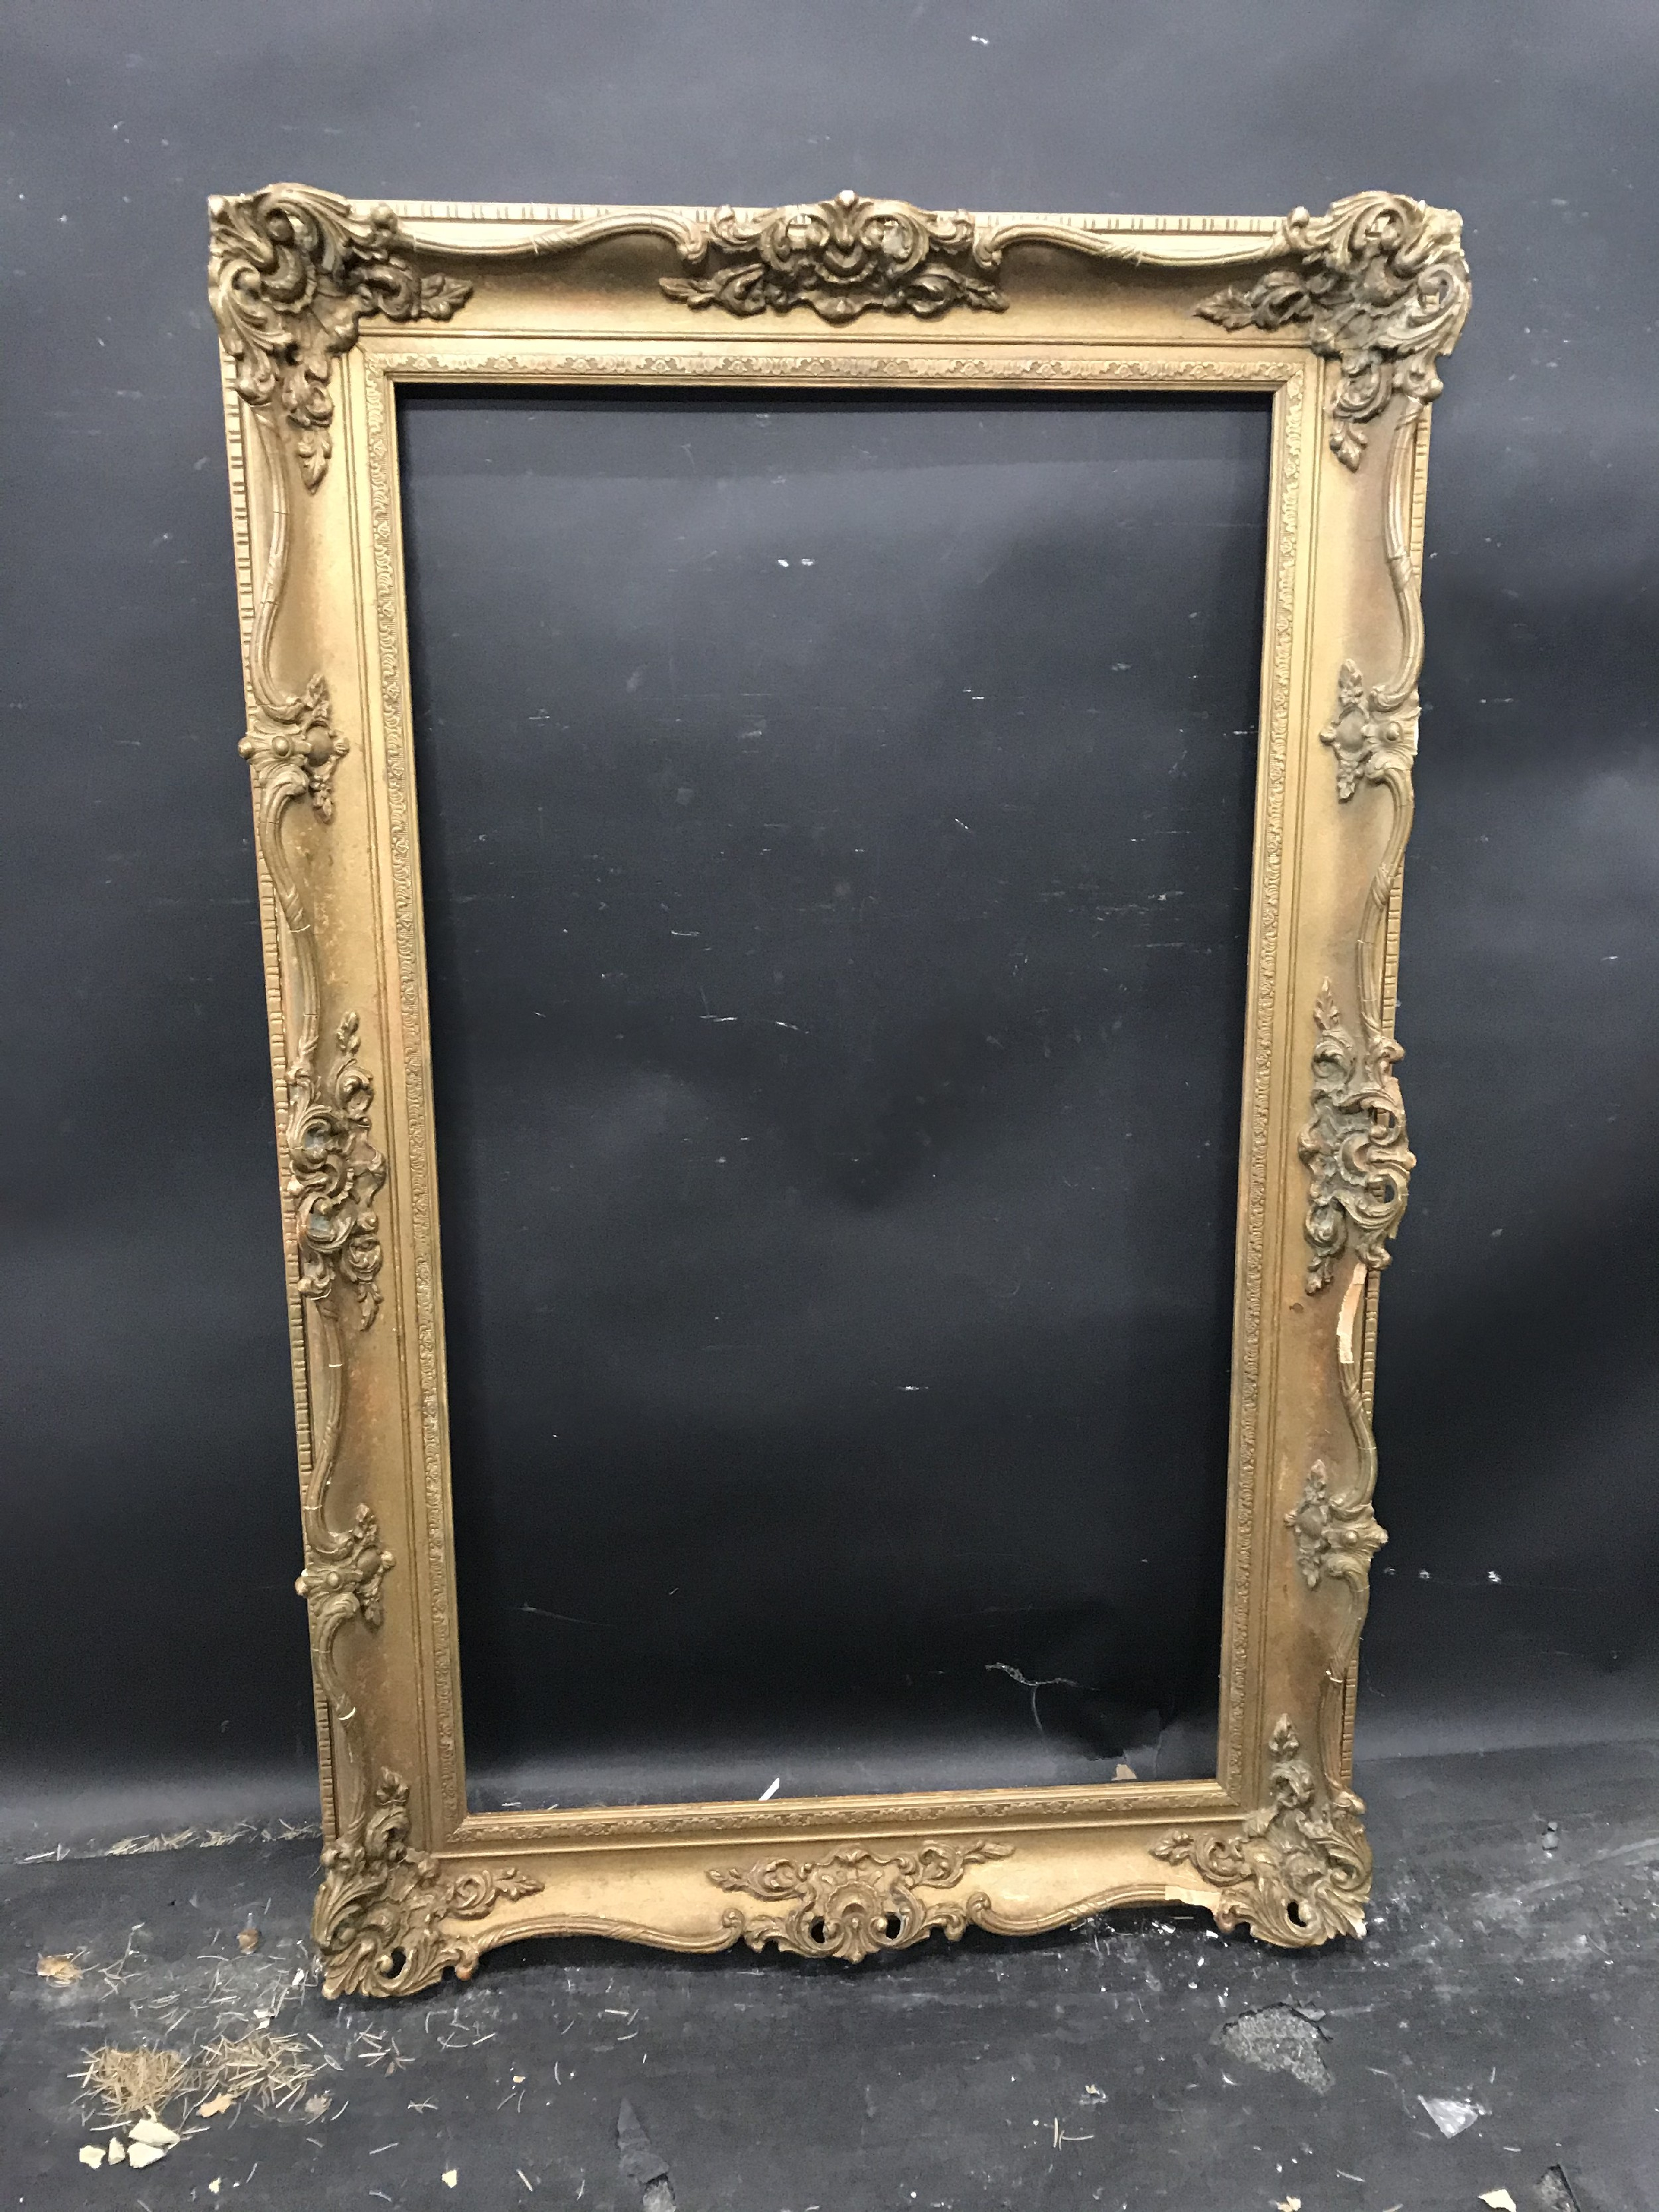 Lot 45 - 20th Century English School. A Gilt Composition Frame, with swept and pierced centres and corners,